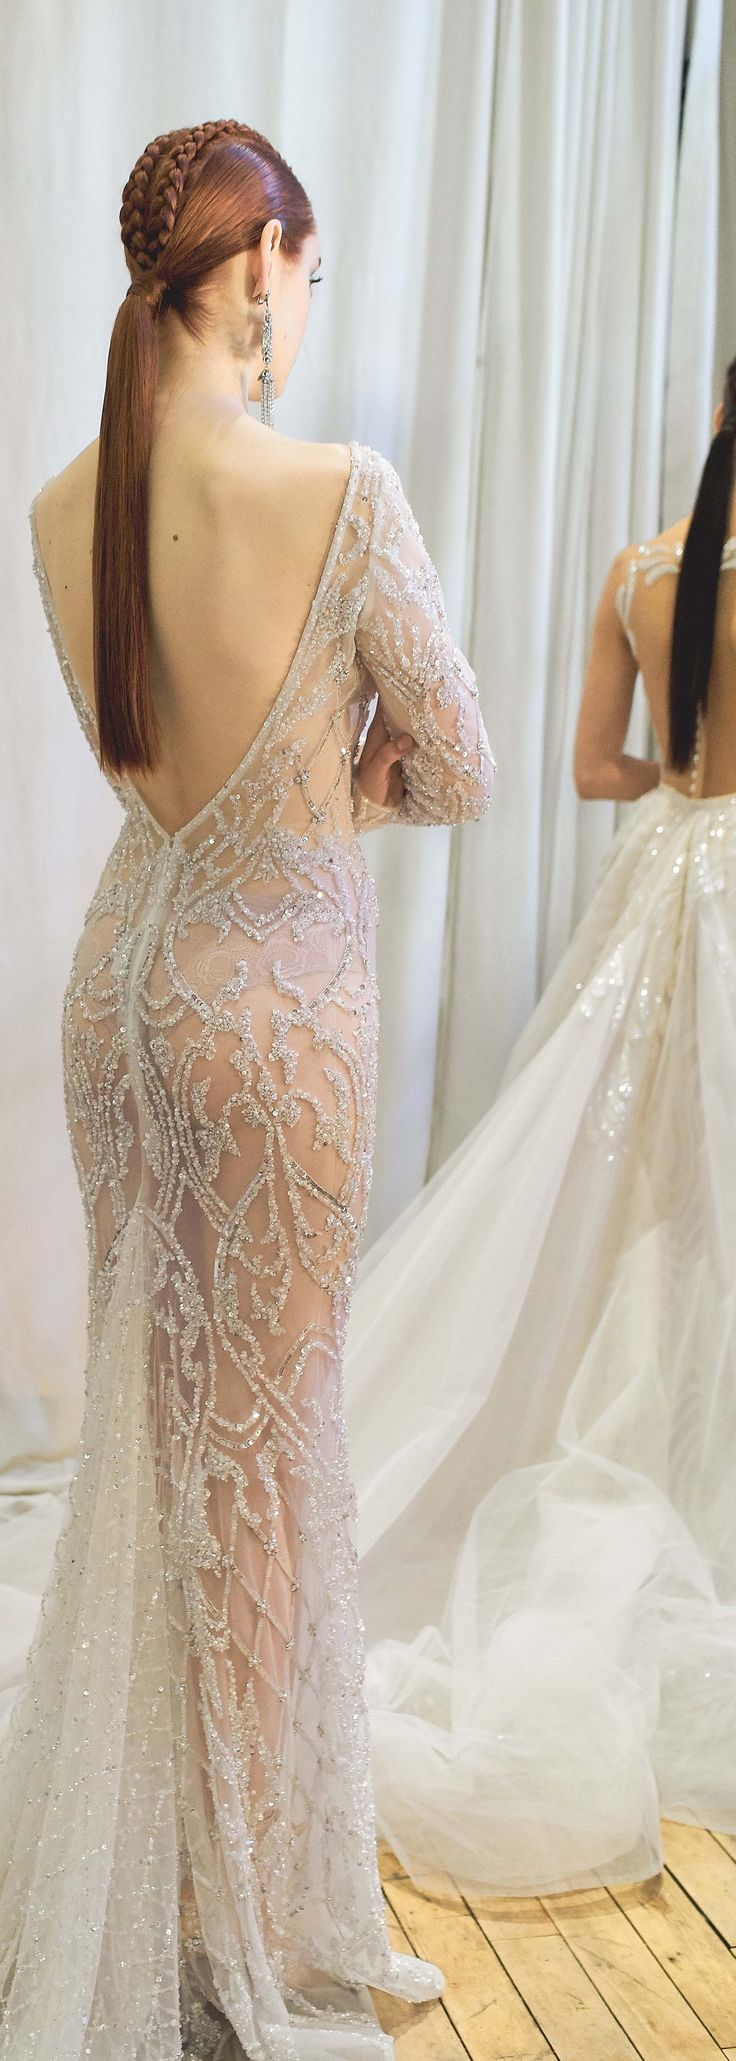 Wedding after party decorations january 2019  best Dress ideas images on Pinterest  Ball dresses Ball gown